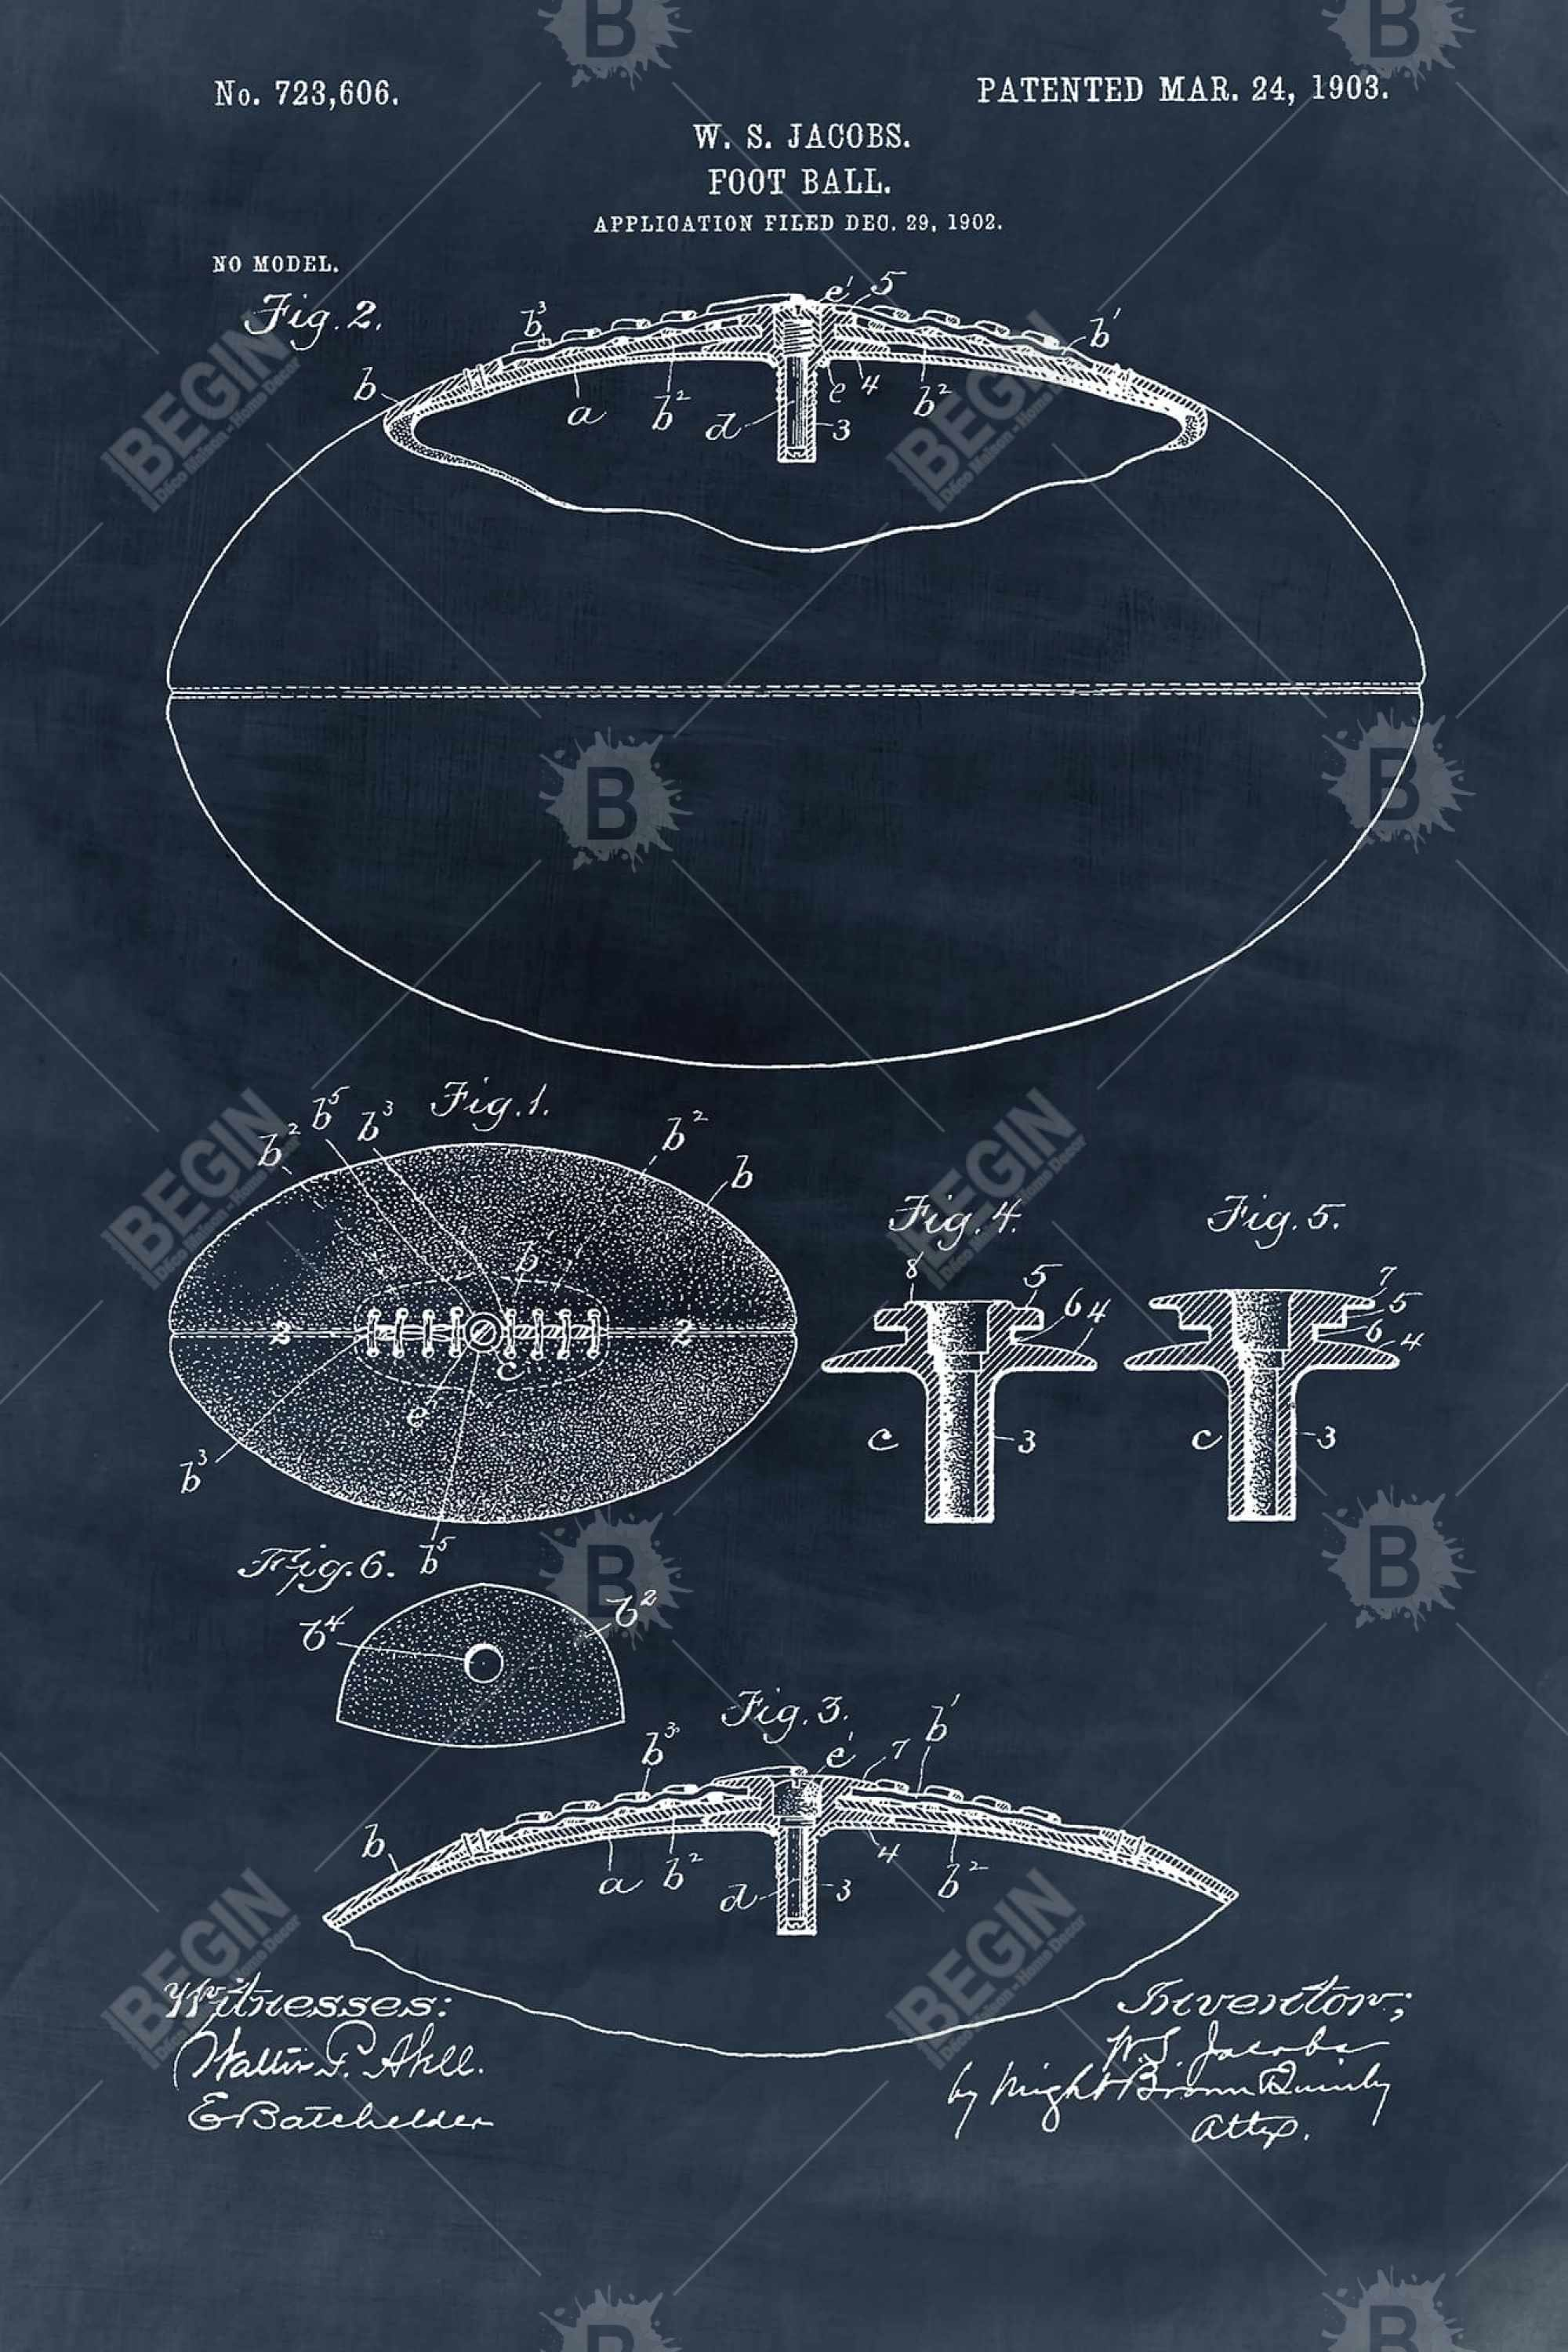 Blue blueprint of a foot ball